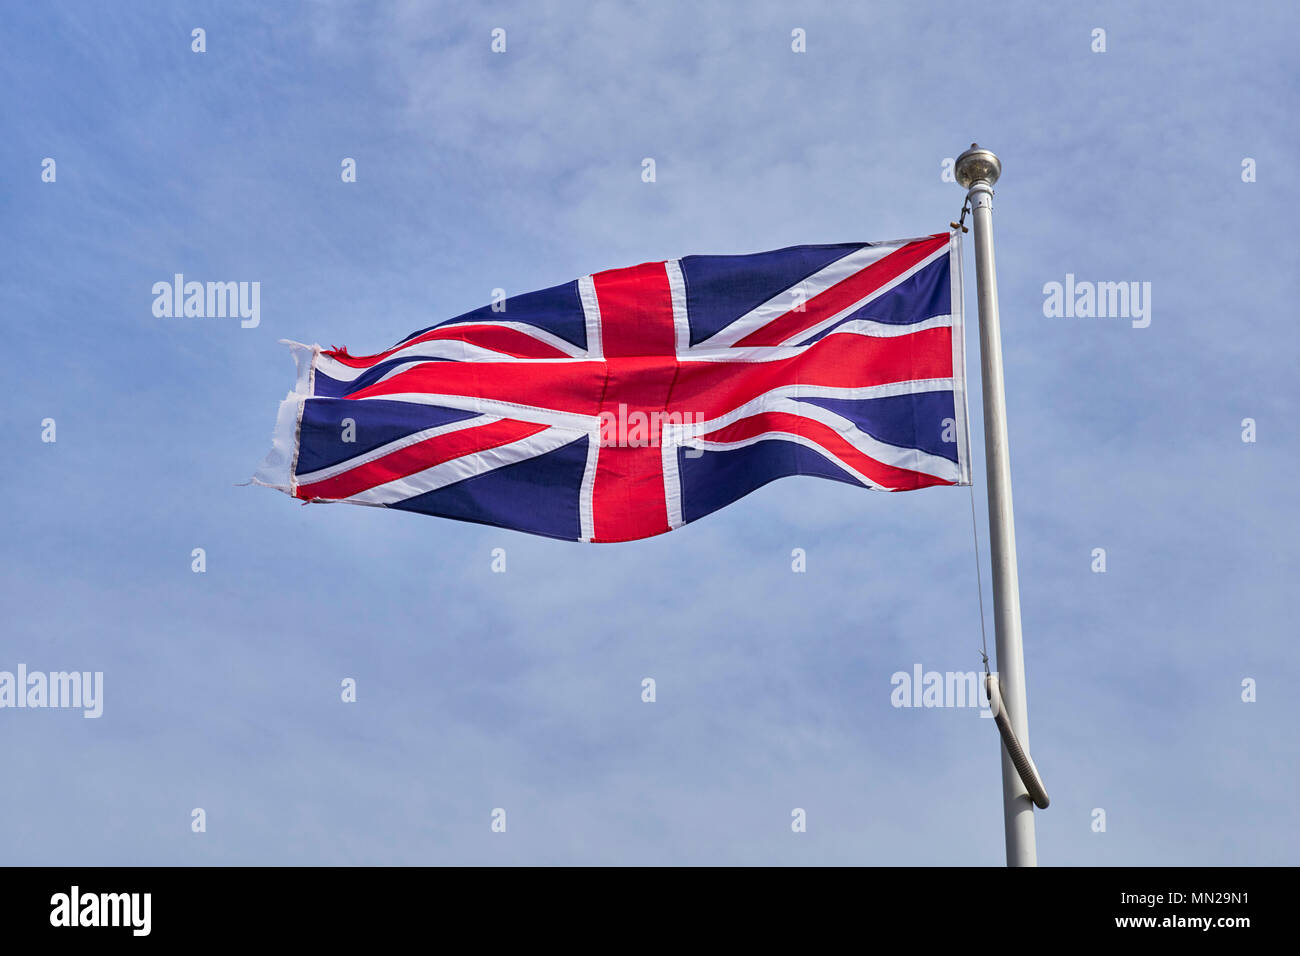 Union Jack flag fluttering in a light breeze on a flagpole against a pale blue sky - Stock Image